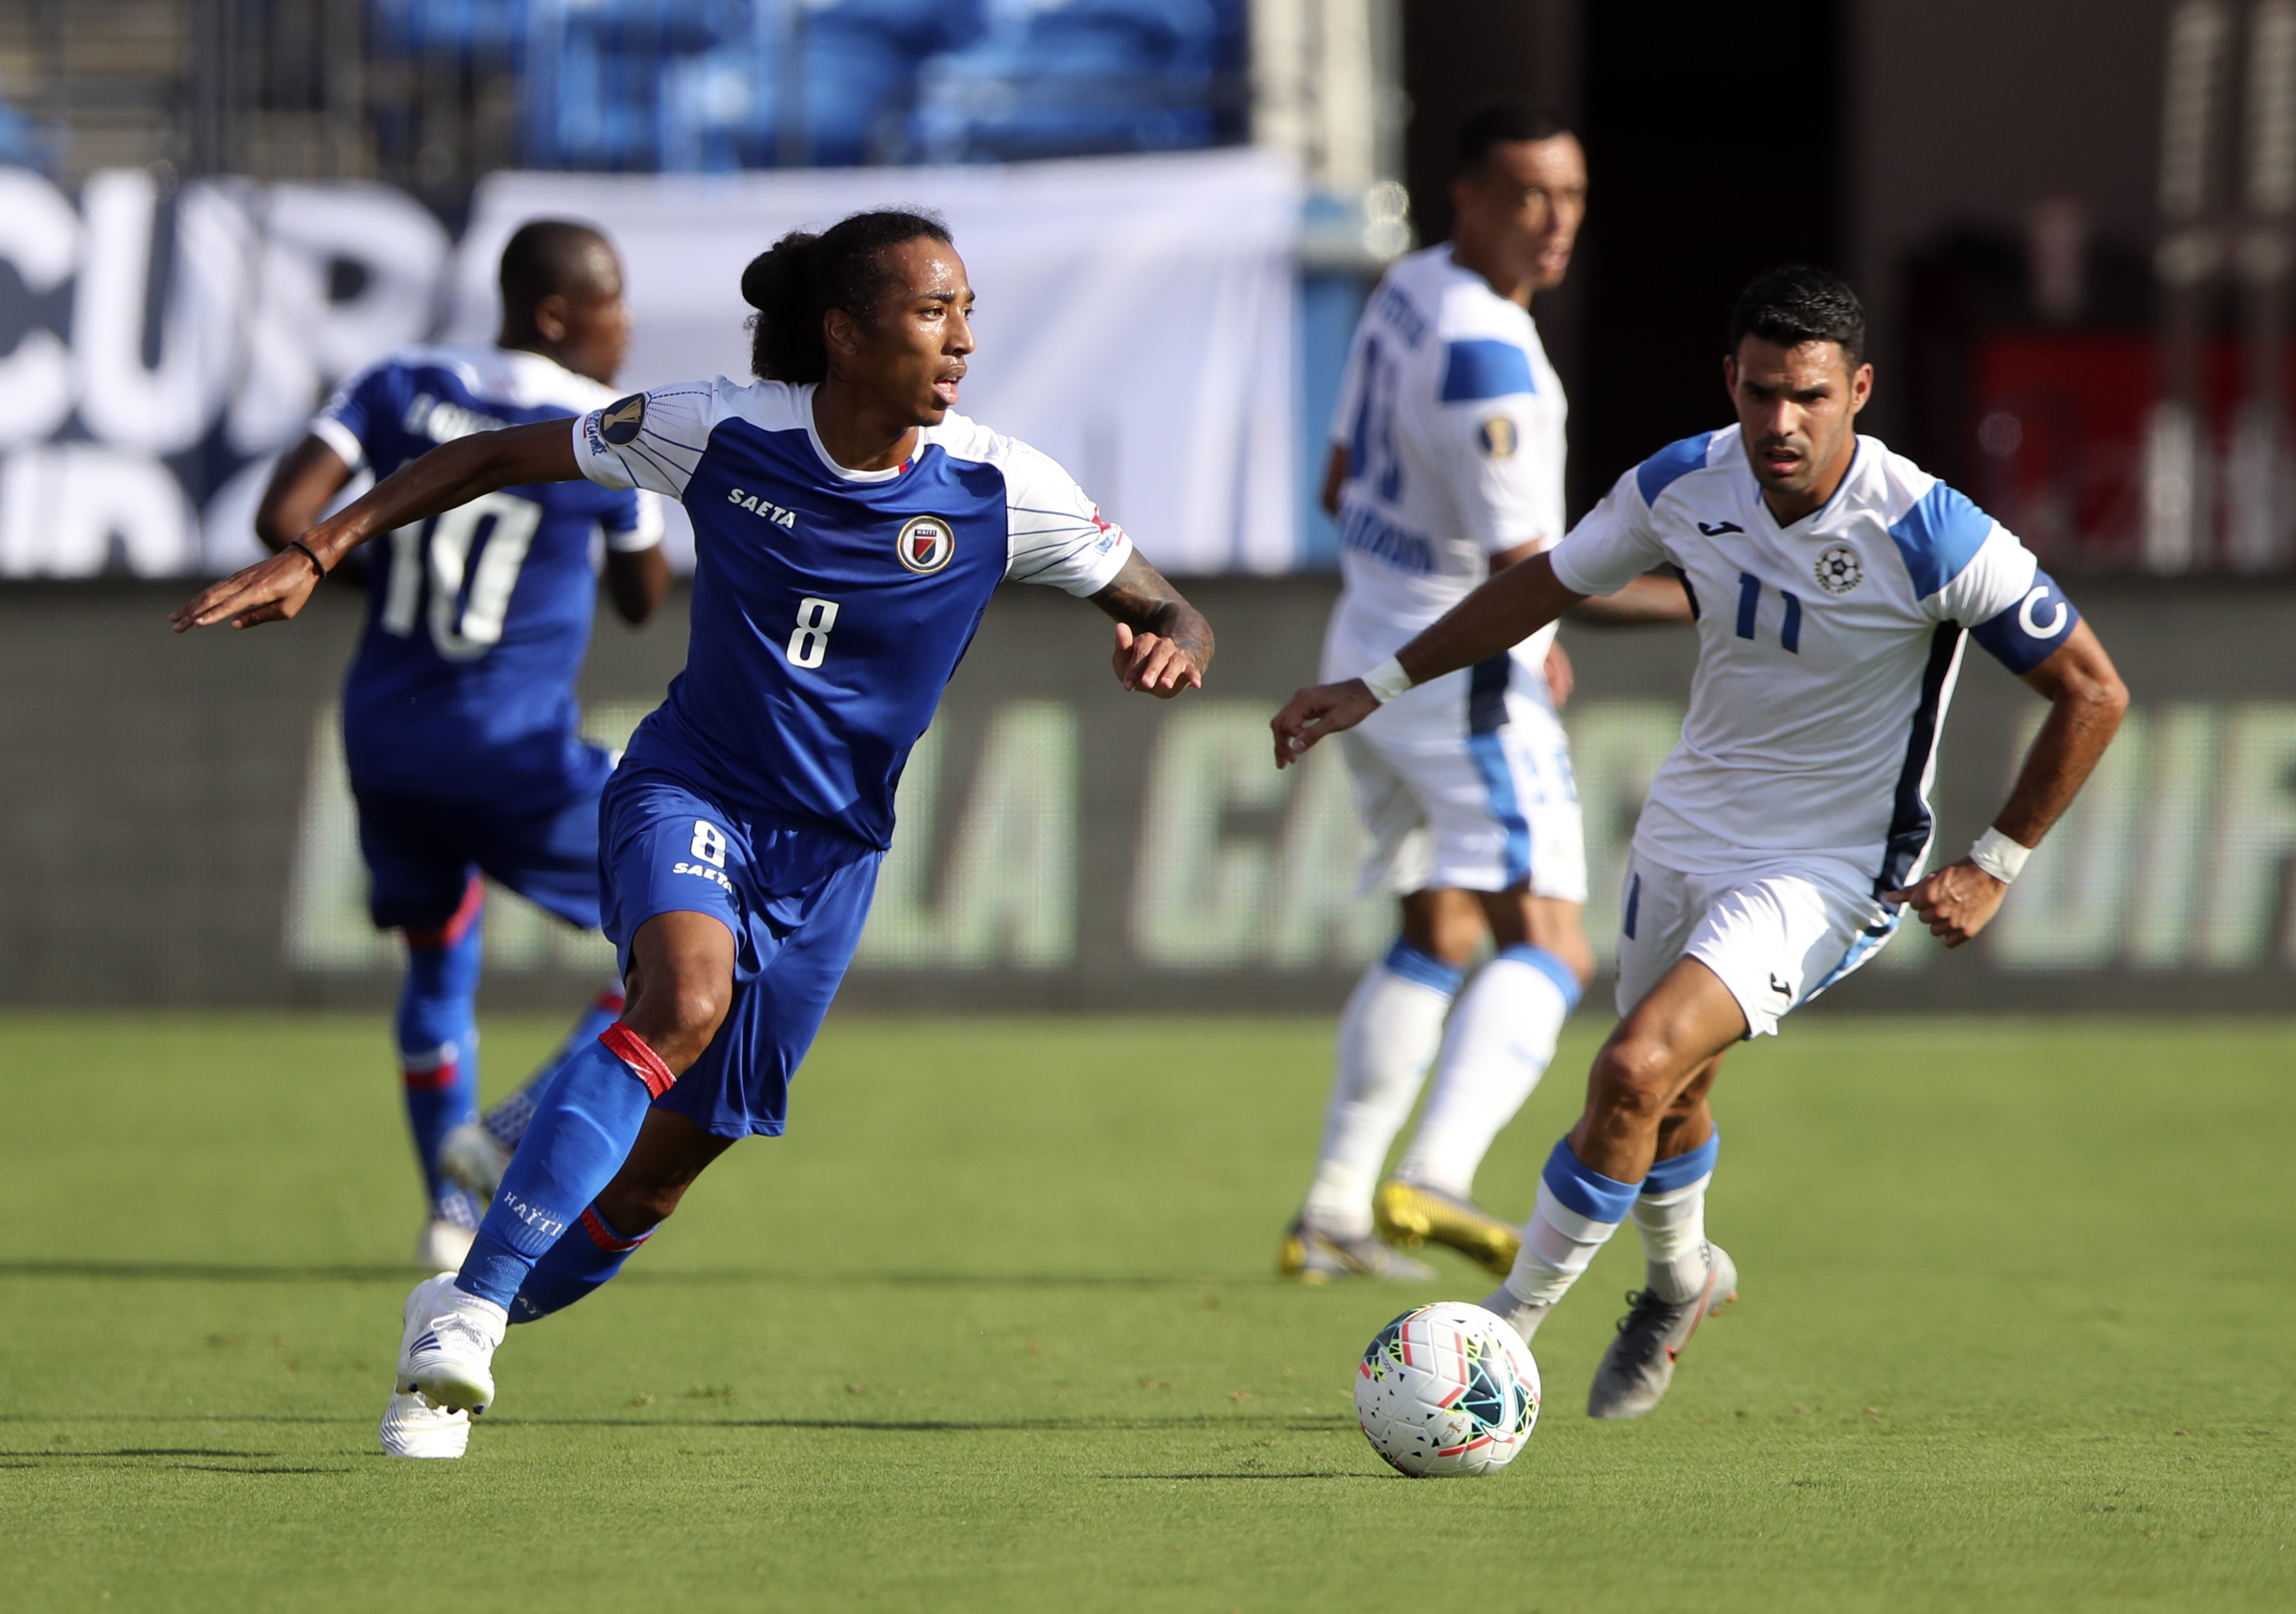 Soccer: CONCACAF Gold Cup-Nicaragua at Haiti